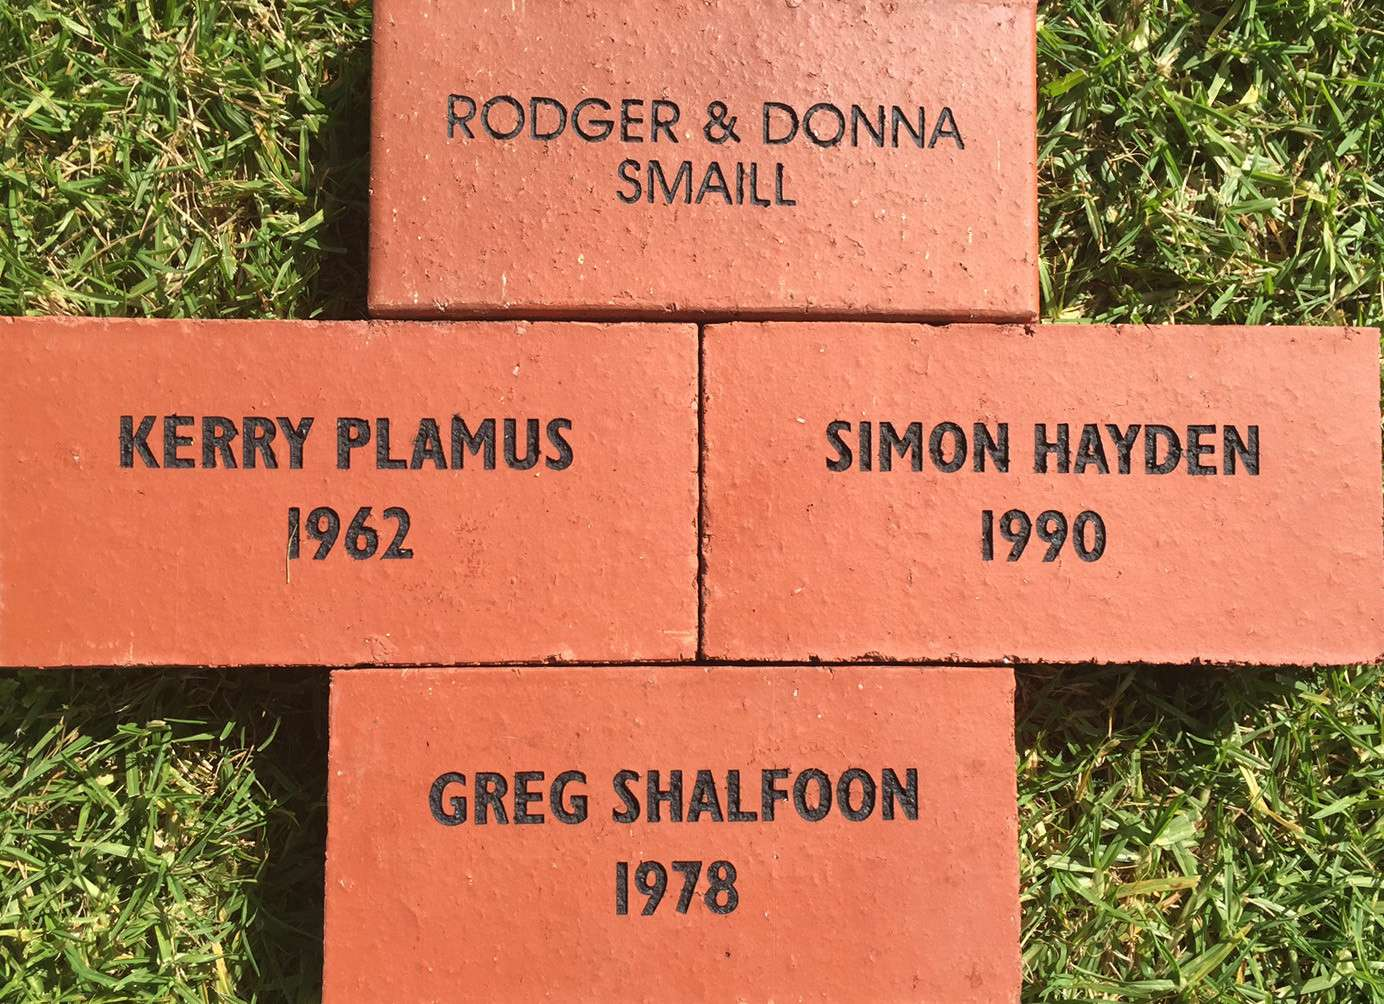 Buy a Legacy Brick and build a seat